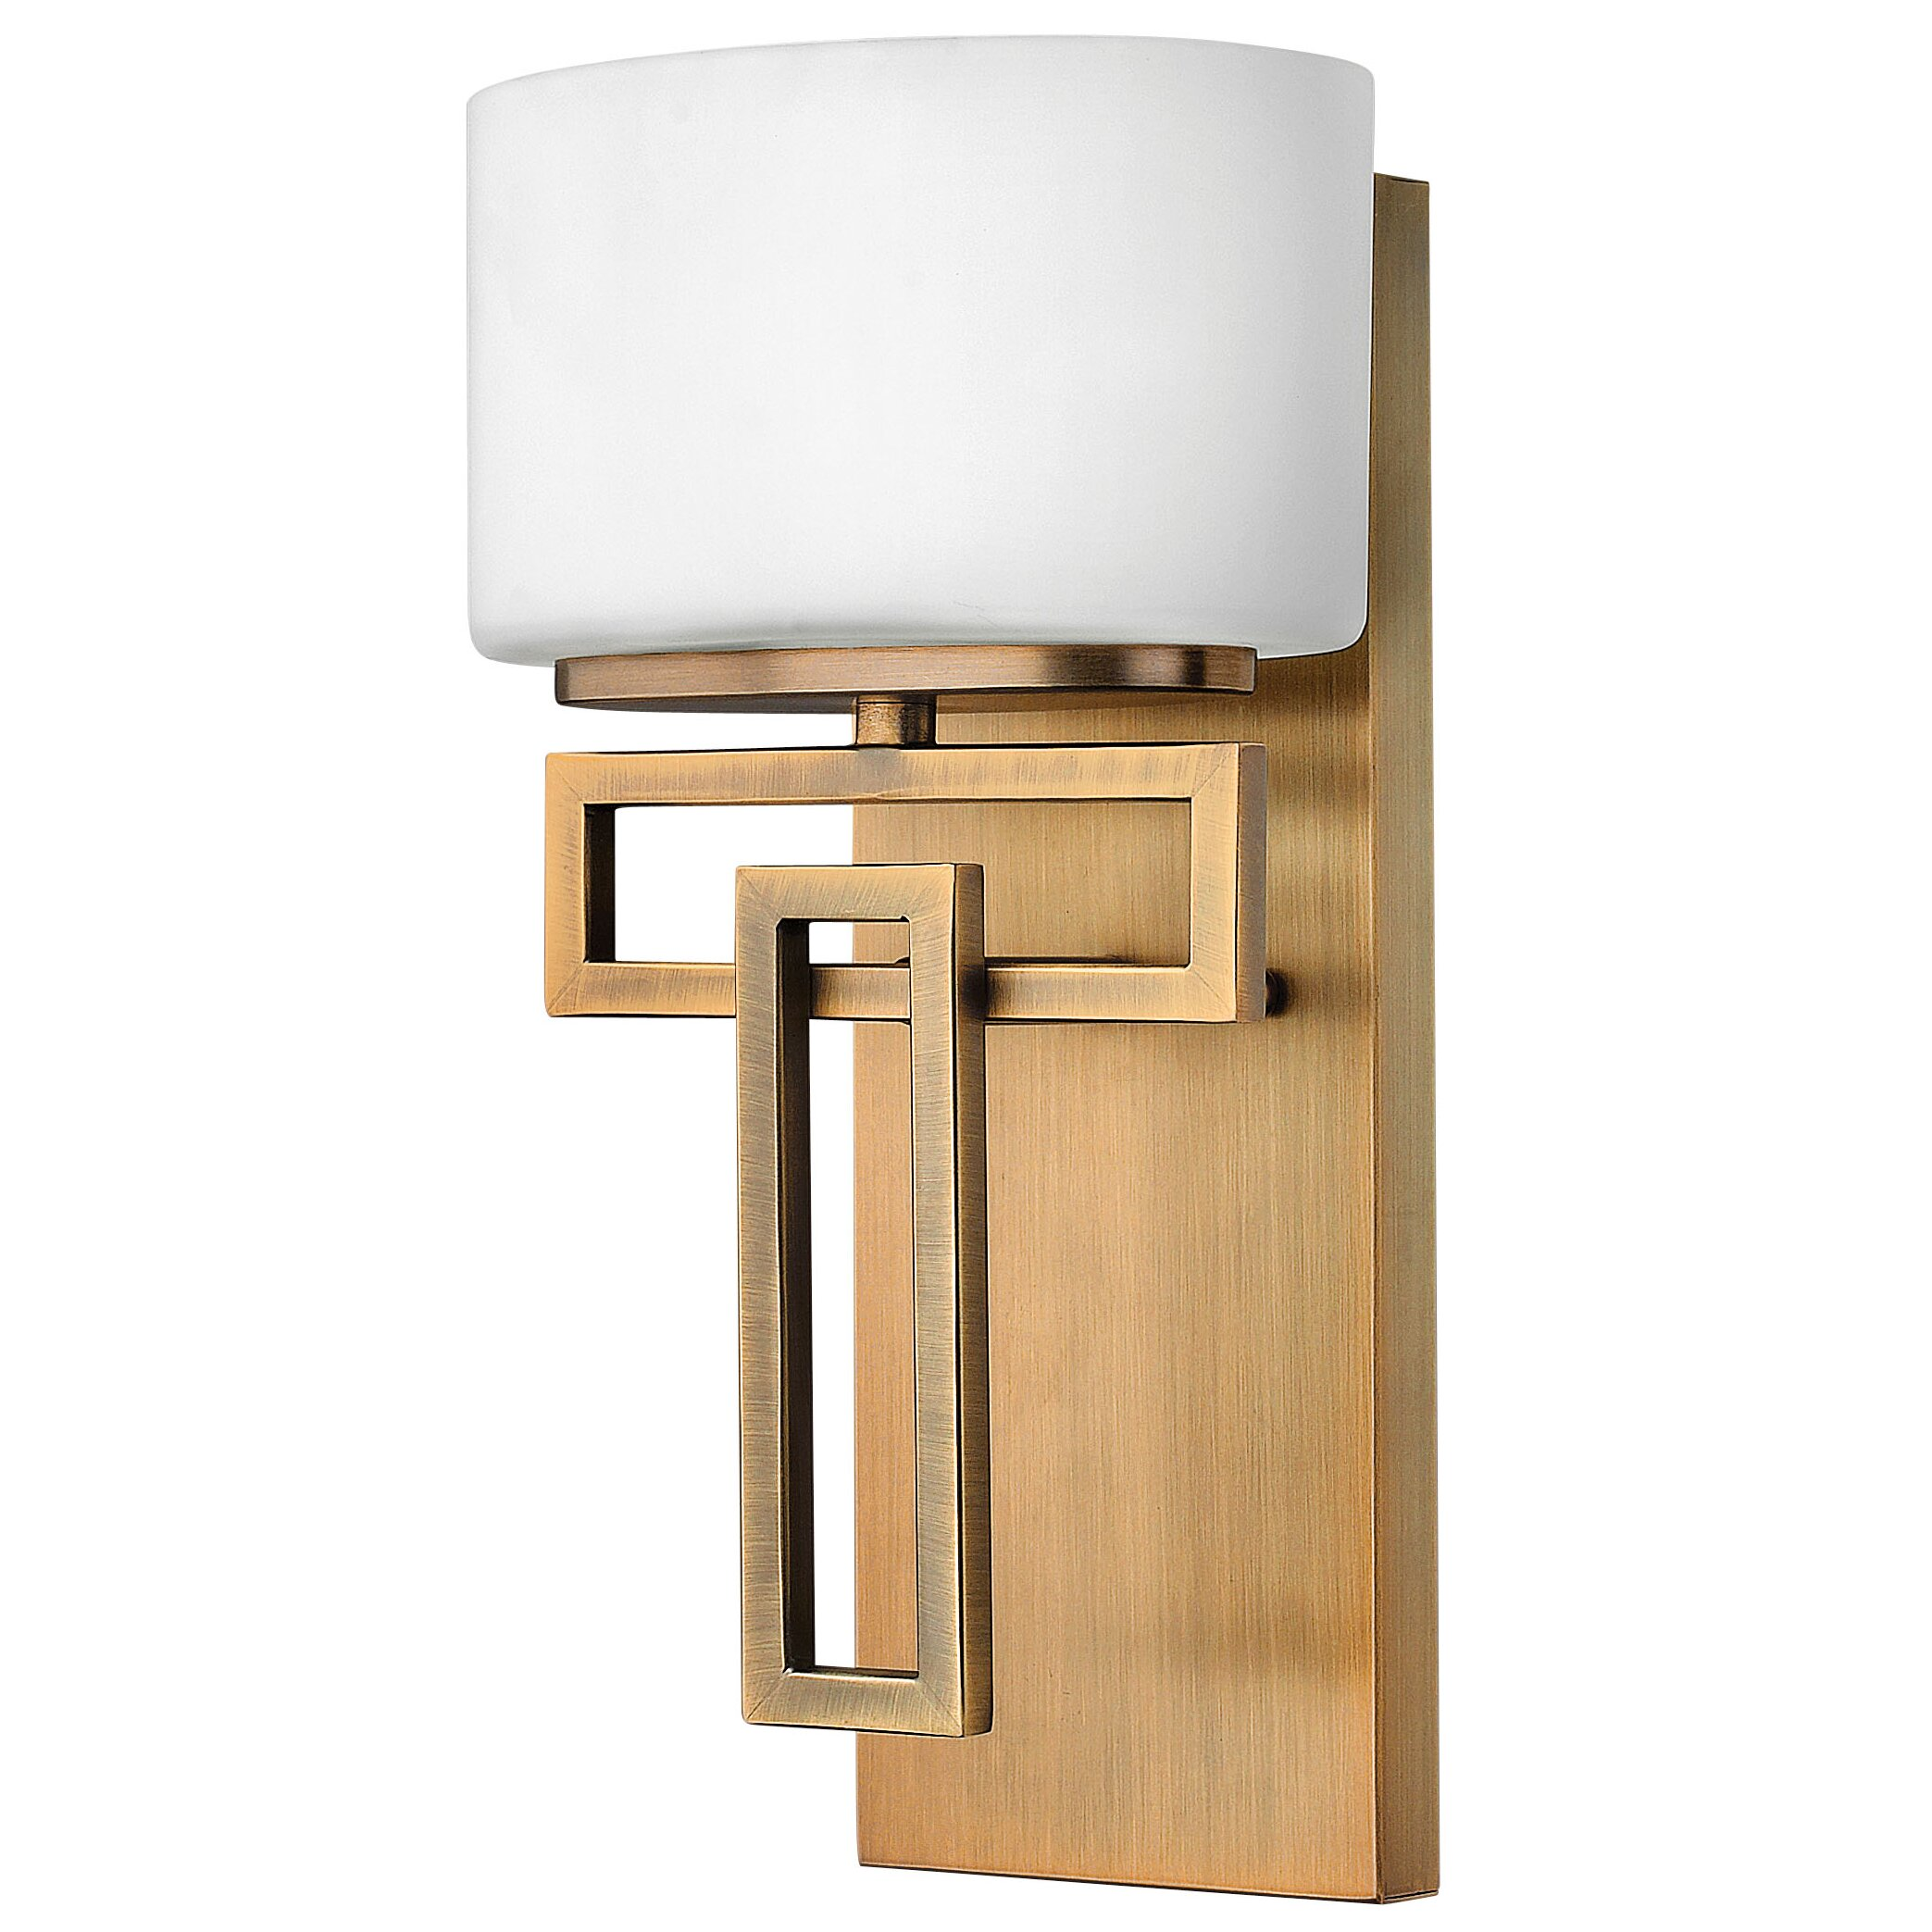 Hinkley Bathroom Wall Sconces : Hinkley Lighting Lanza 1 Light Wall Sconce & Reviews Wayfair